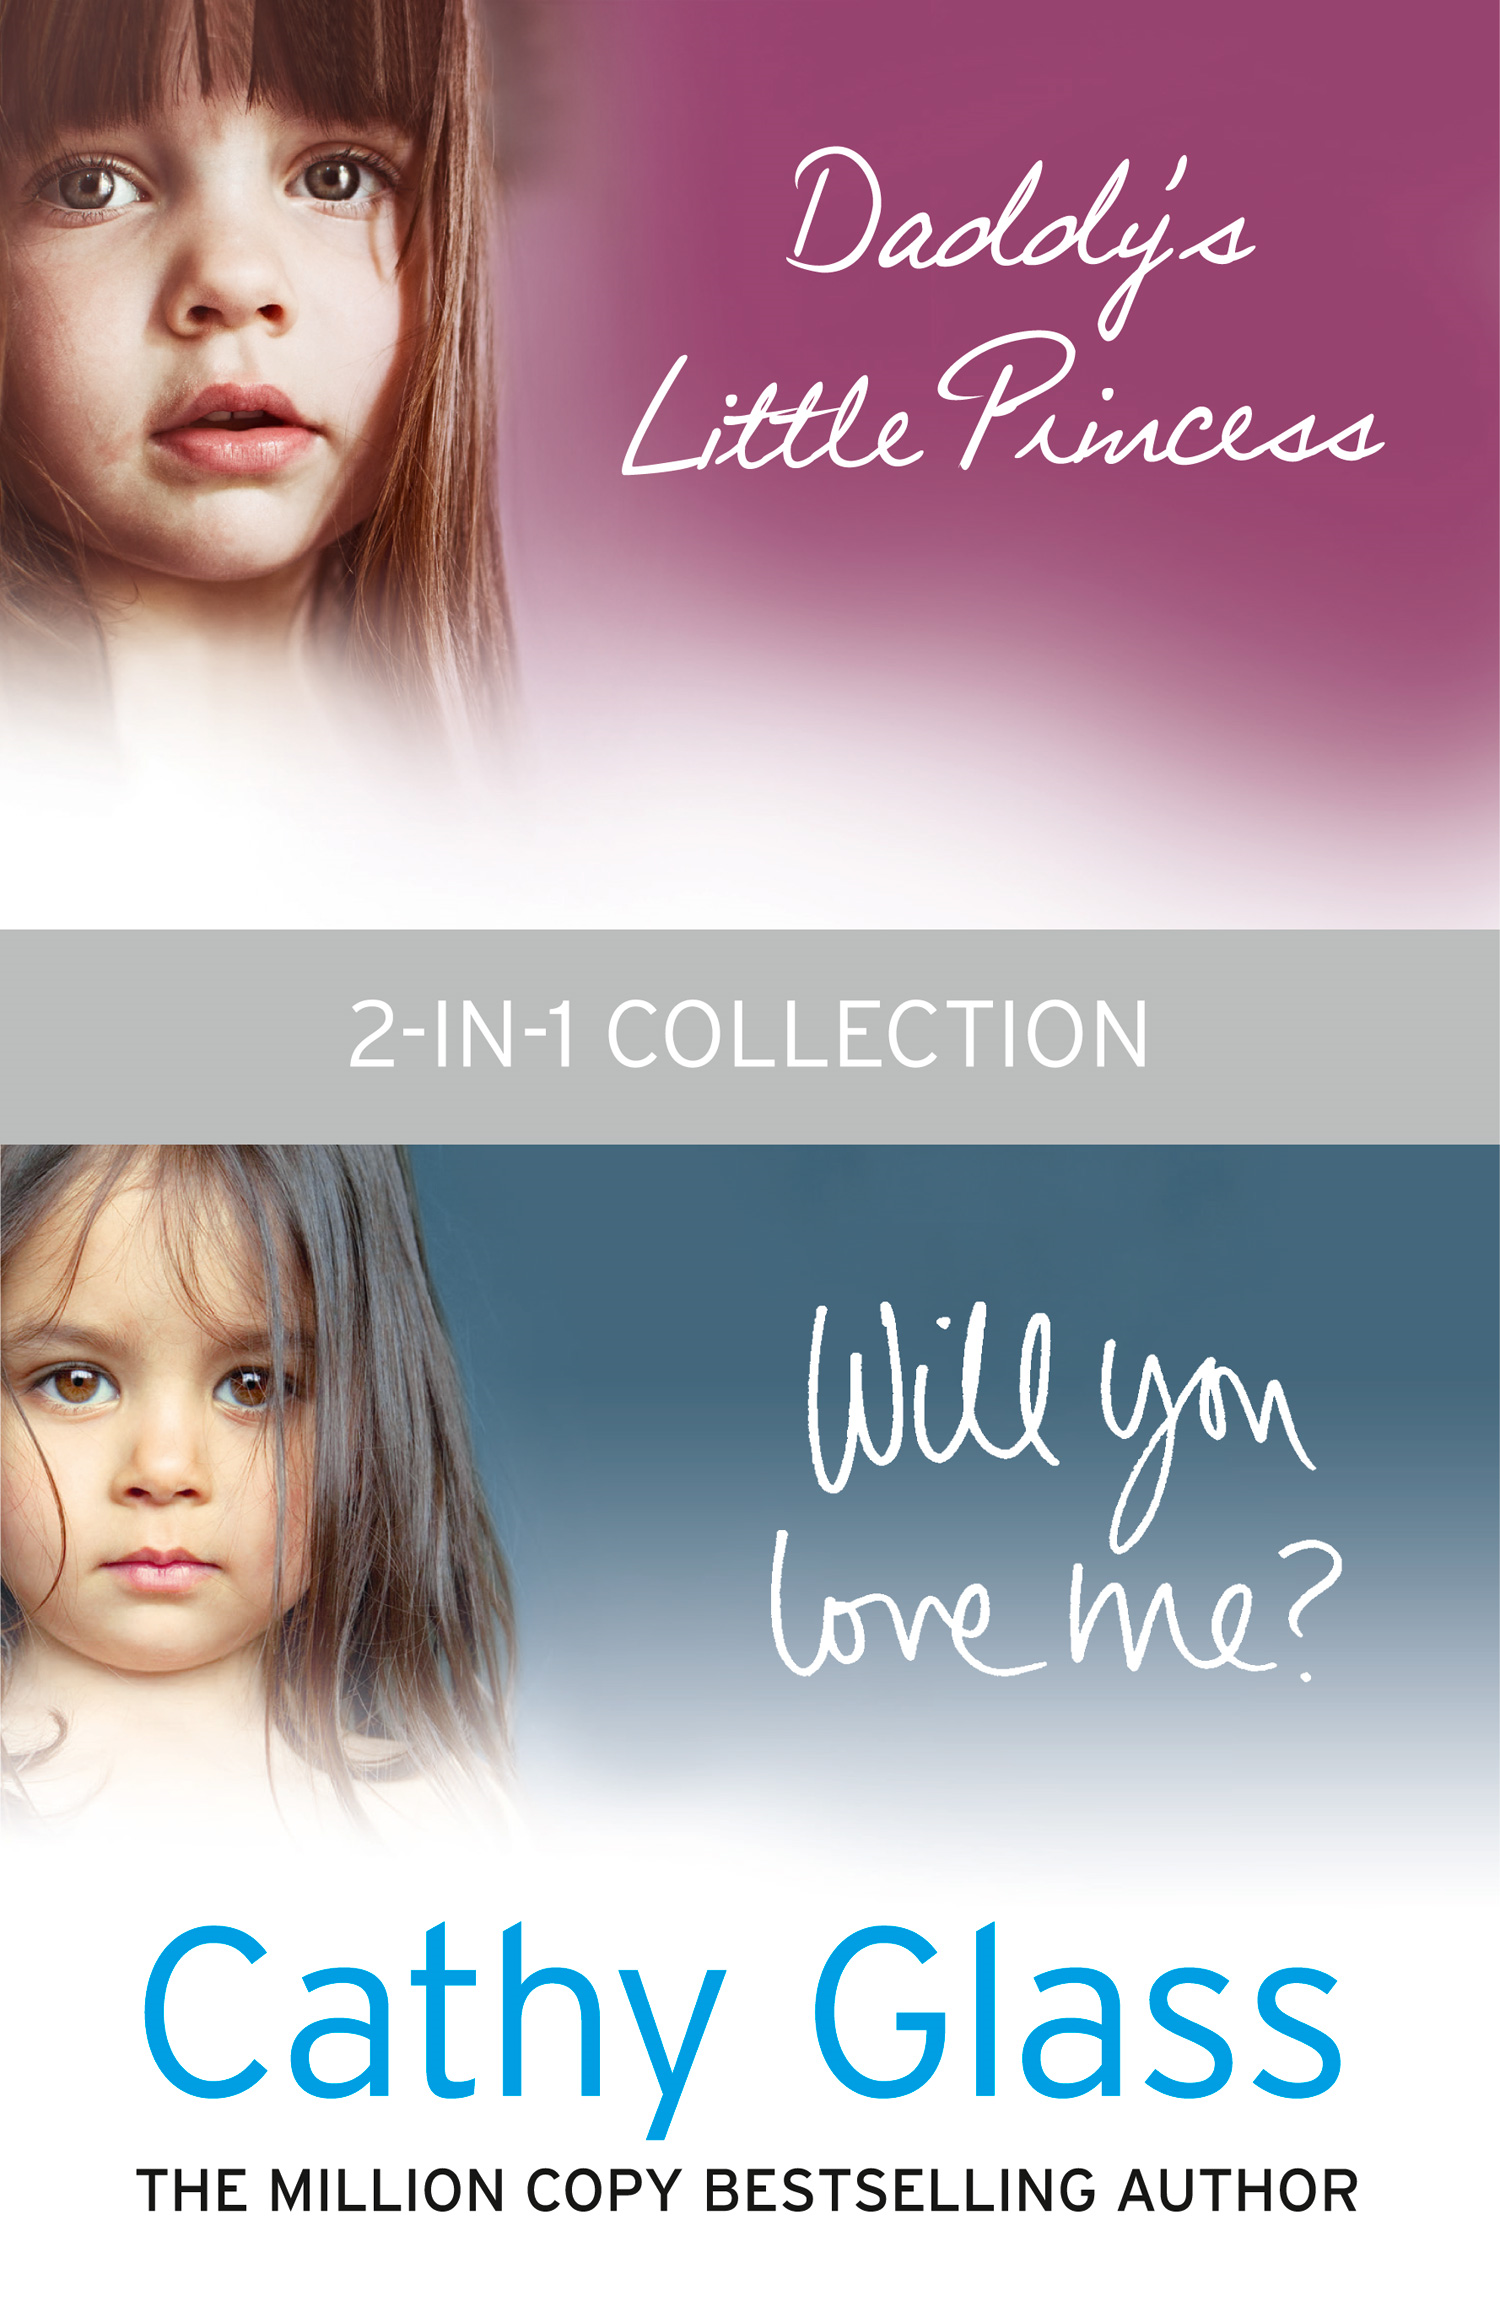 Daddy?s Little Princess and Will You Love Me 2-in-1 Collection